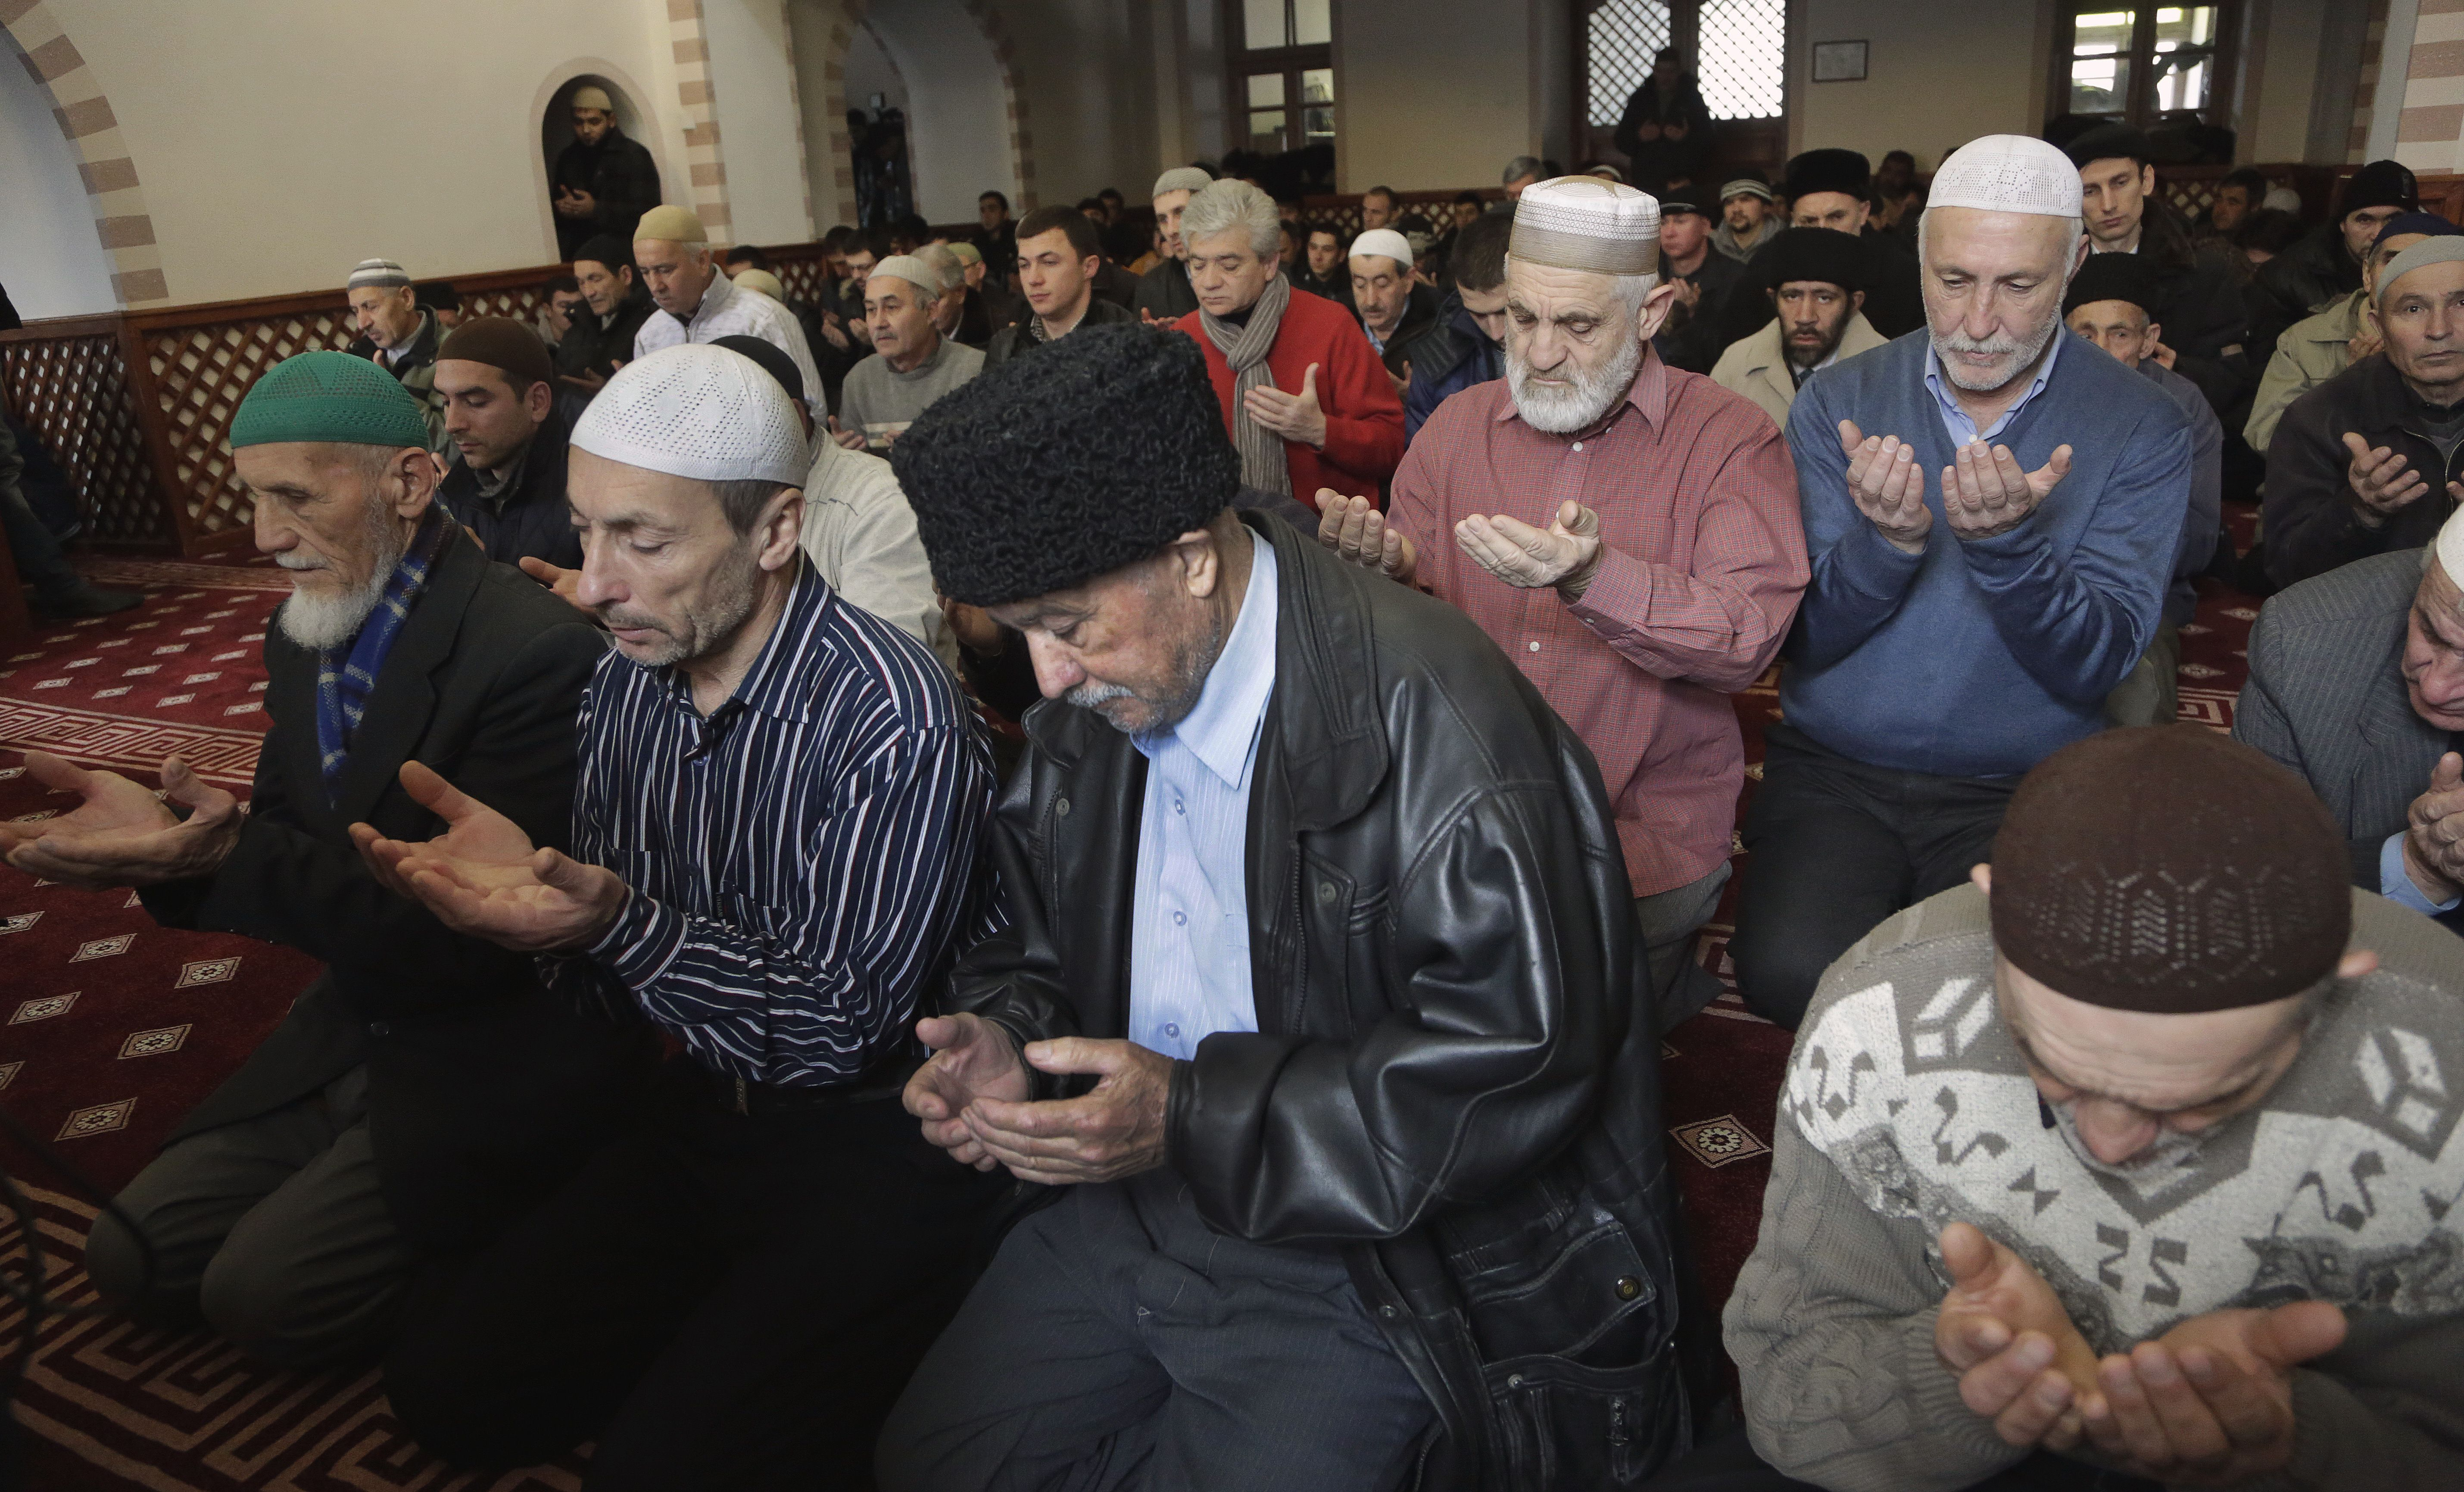 Crimean Tatar muslims pray in the Kebir-Jami mosque in Simferopol on January 16, 2015. AFP PHOTO / MAX VETROV        (Photo credit should read MAX VETROV/AFP/Getty Images)